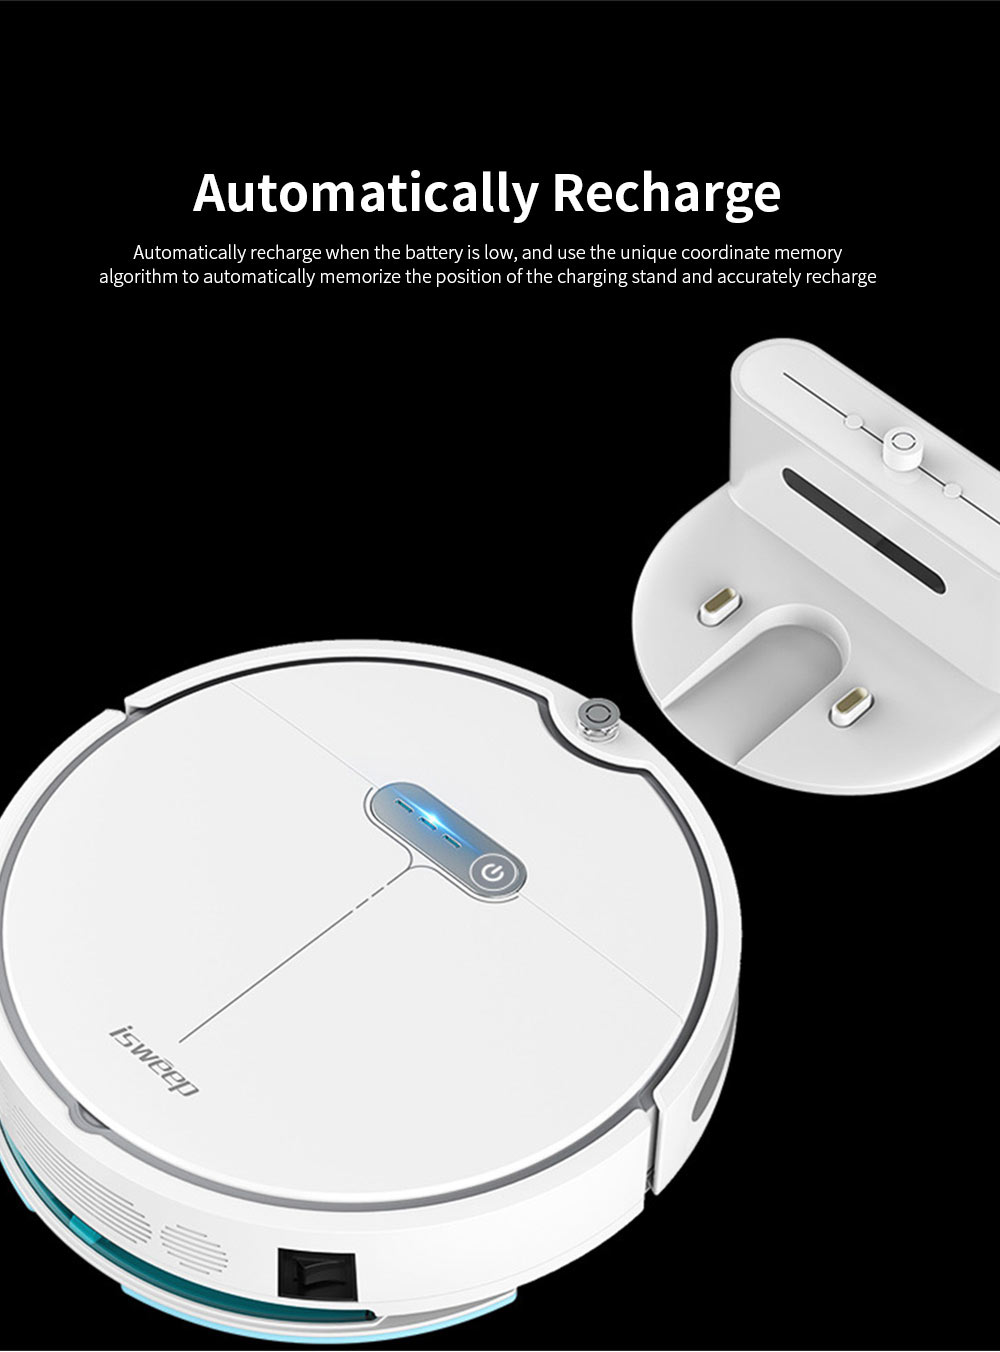 Sweeping Robot Automatically Recharge Cleaner with 1200Pa Strong Suction Remote Control Anti-Collision Sensor for House Cleaning 5